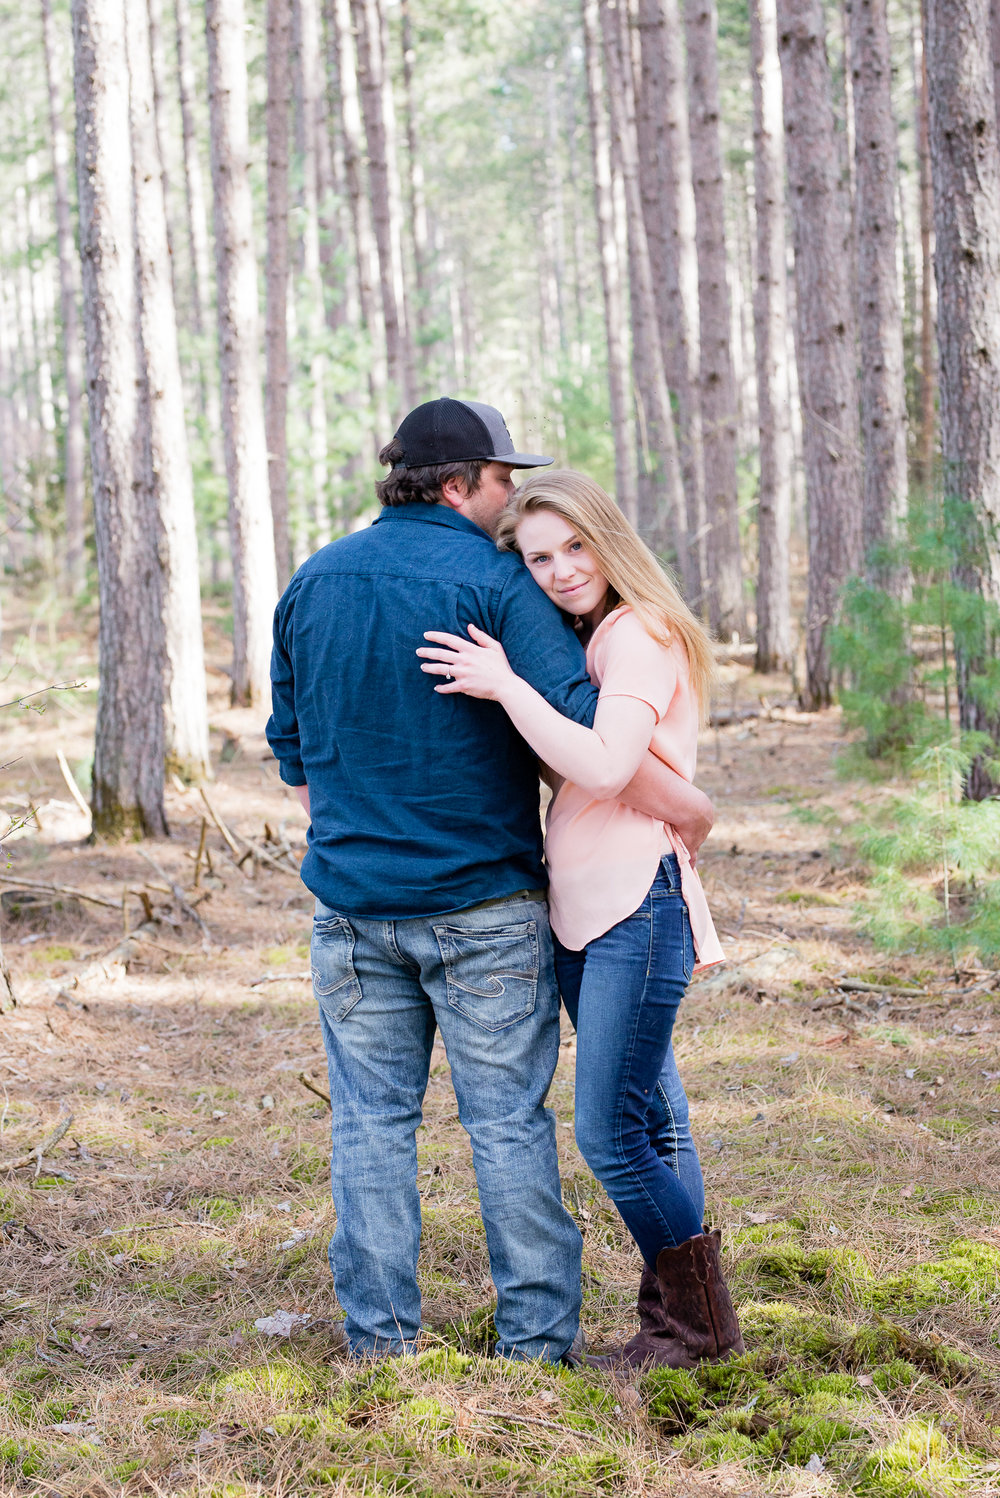 Couples188untitled052018.jpg